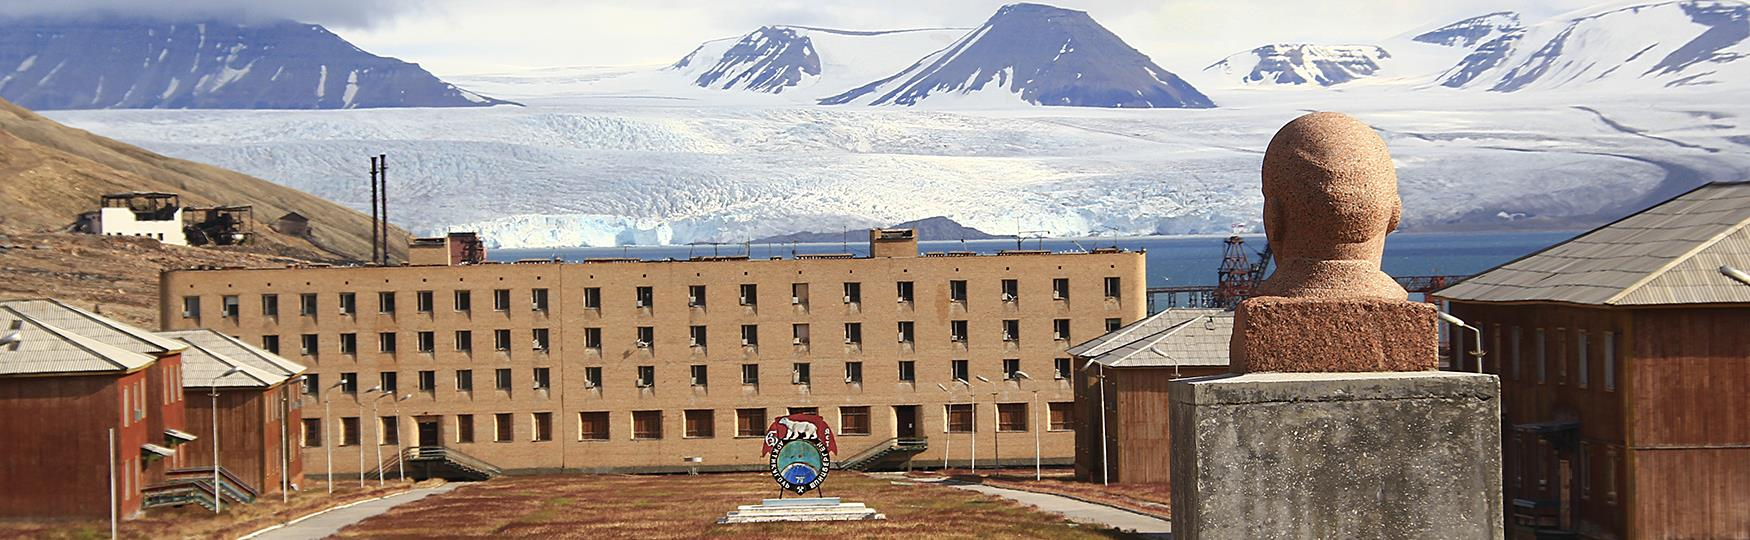 Russian architecture and culture in Svalbard